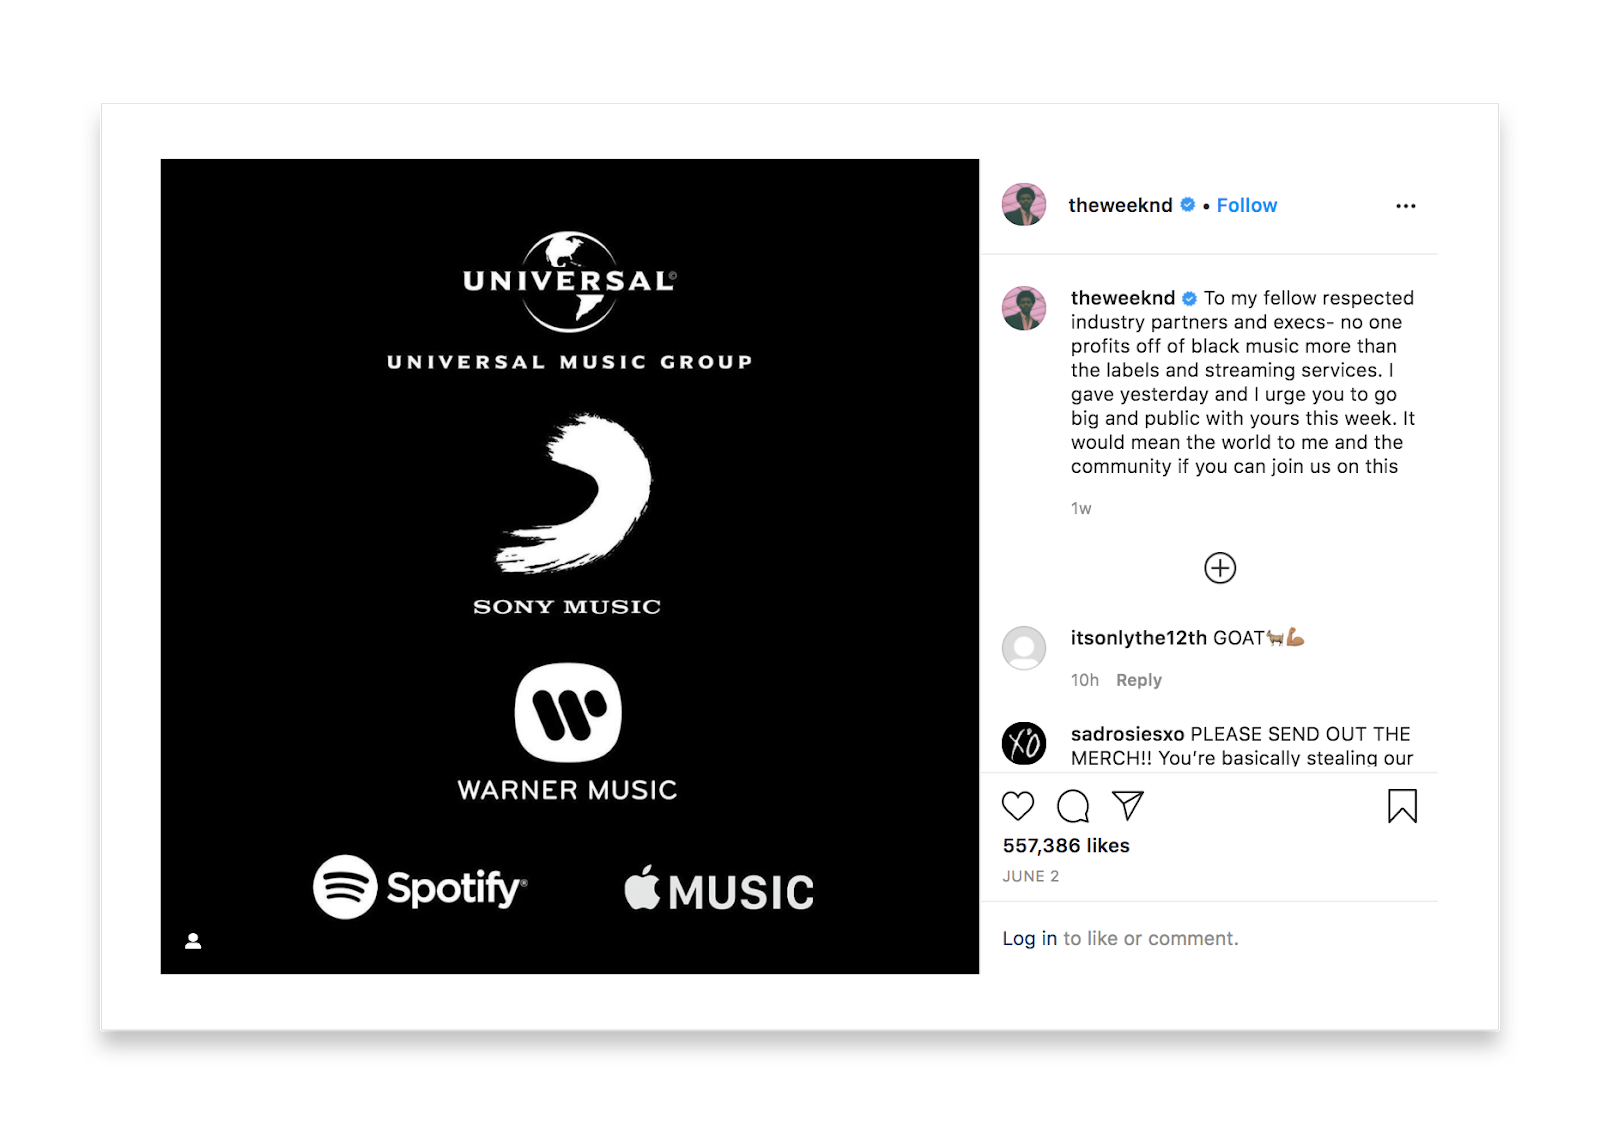 This Instagram post's image is all black except for the names and logos of Universal, Sony, Warner, Spotify, and Apple Music. The caption of the post by theweeknd reads To my fellow respected industry partners and execs- no one profits off of black music more than the labels and streaming services. I gave yesterday and I urge you to go big and public with yours this week. It would mean the world to me and the community if you can join us.